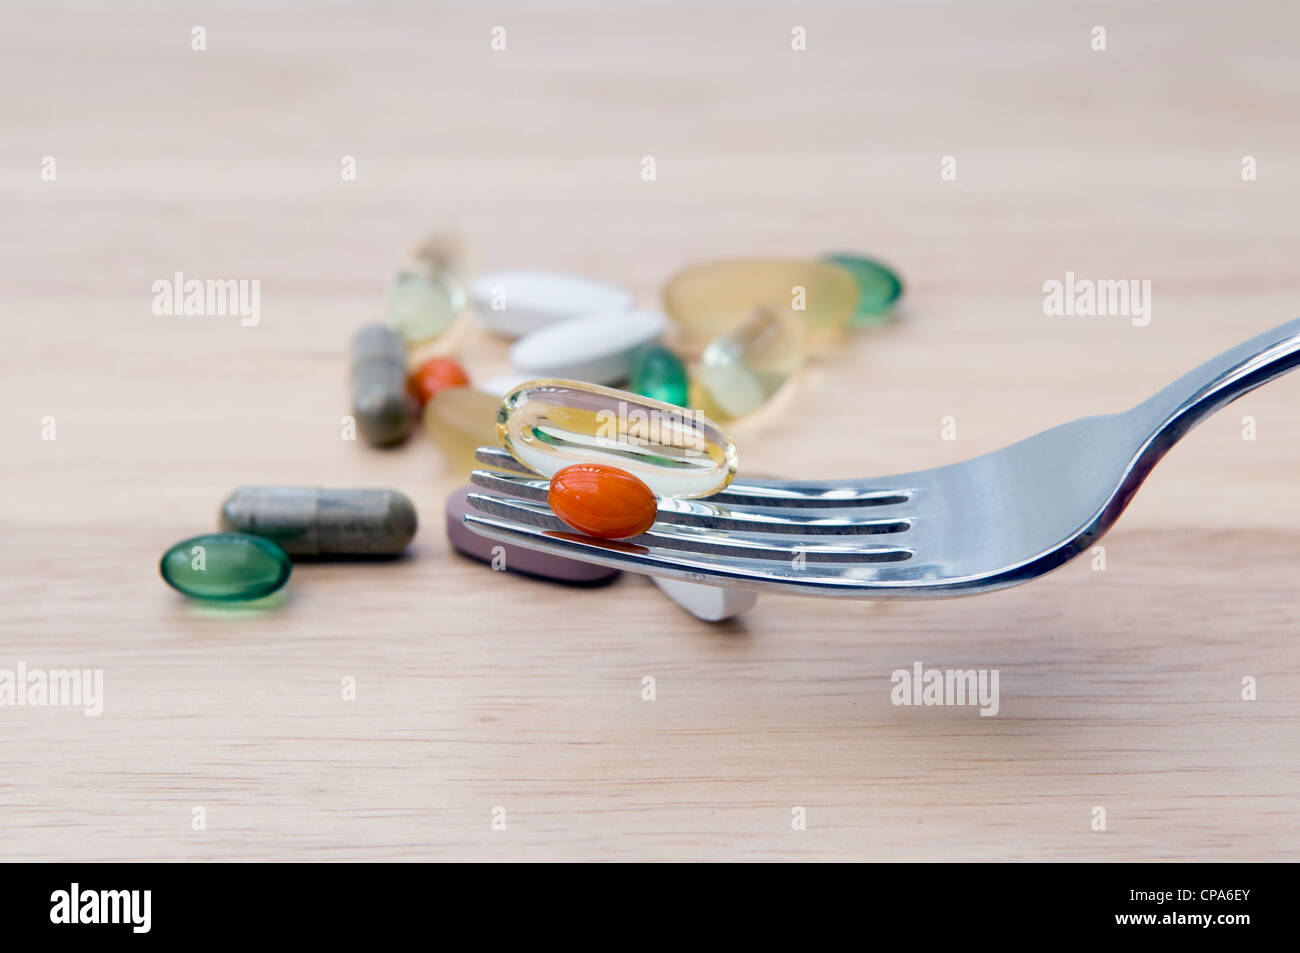 Selection of vitamins (omega 3, Co-enzyme Q10, peppermint, chondroitin, ginkgo and ginseng) on fork and wooden chopping - Stock Image